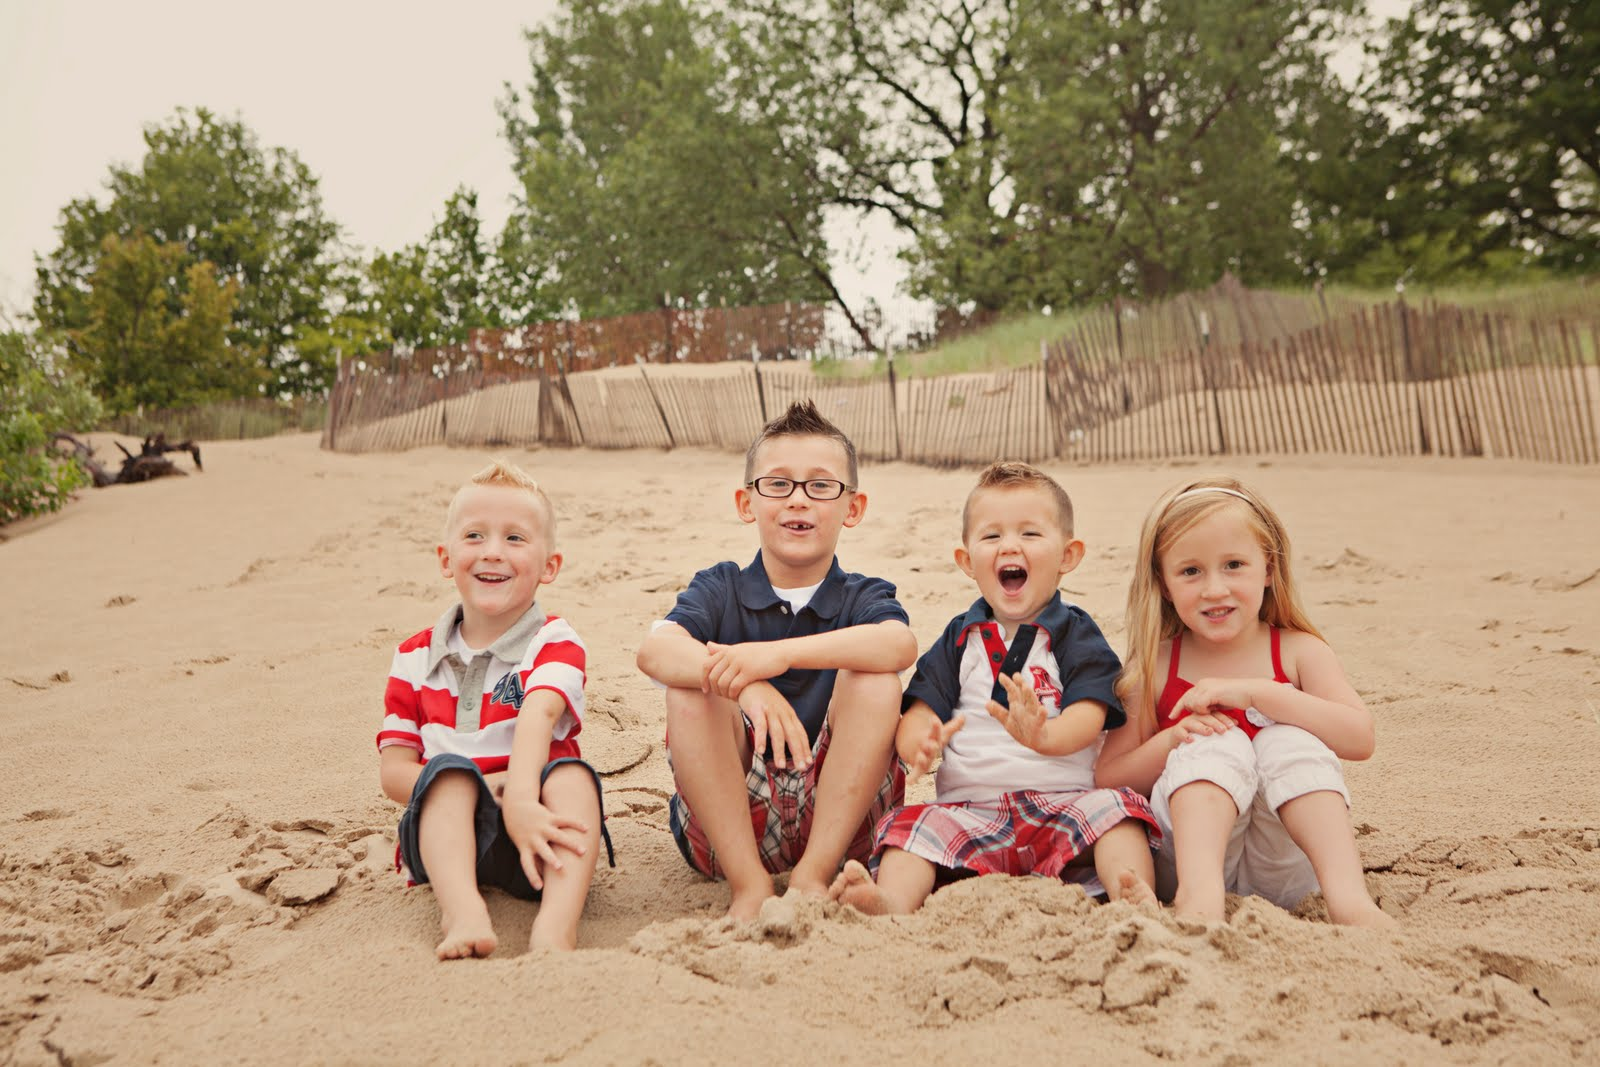 Kids sitting on beach.jpg